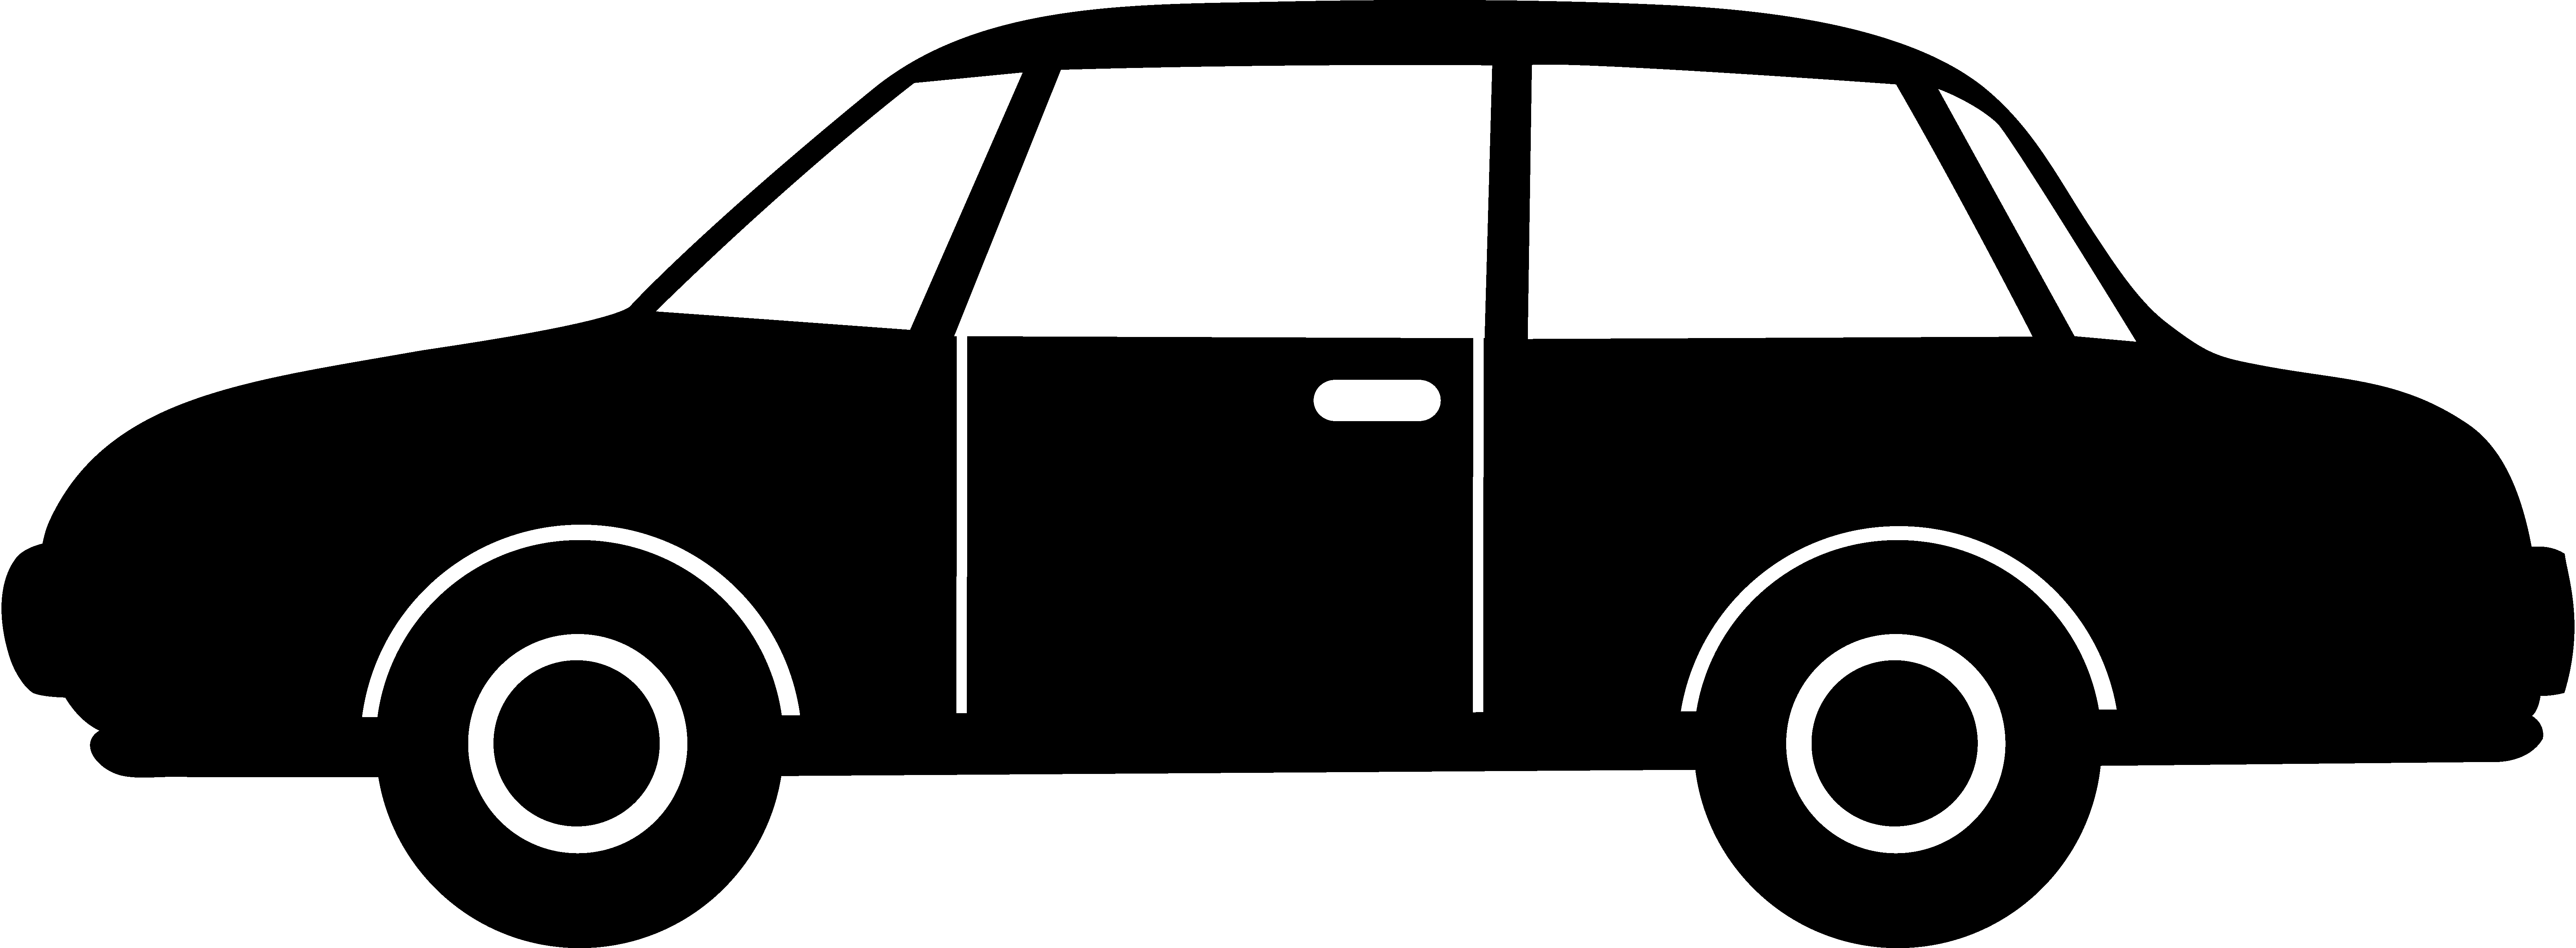 Car silhouette transparent png. Driver clipart black and white